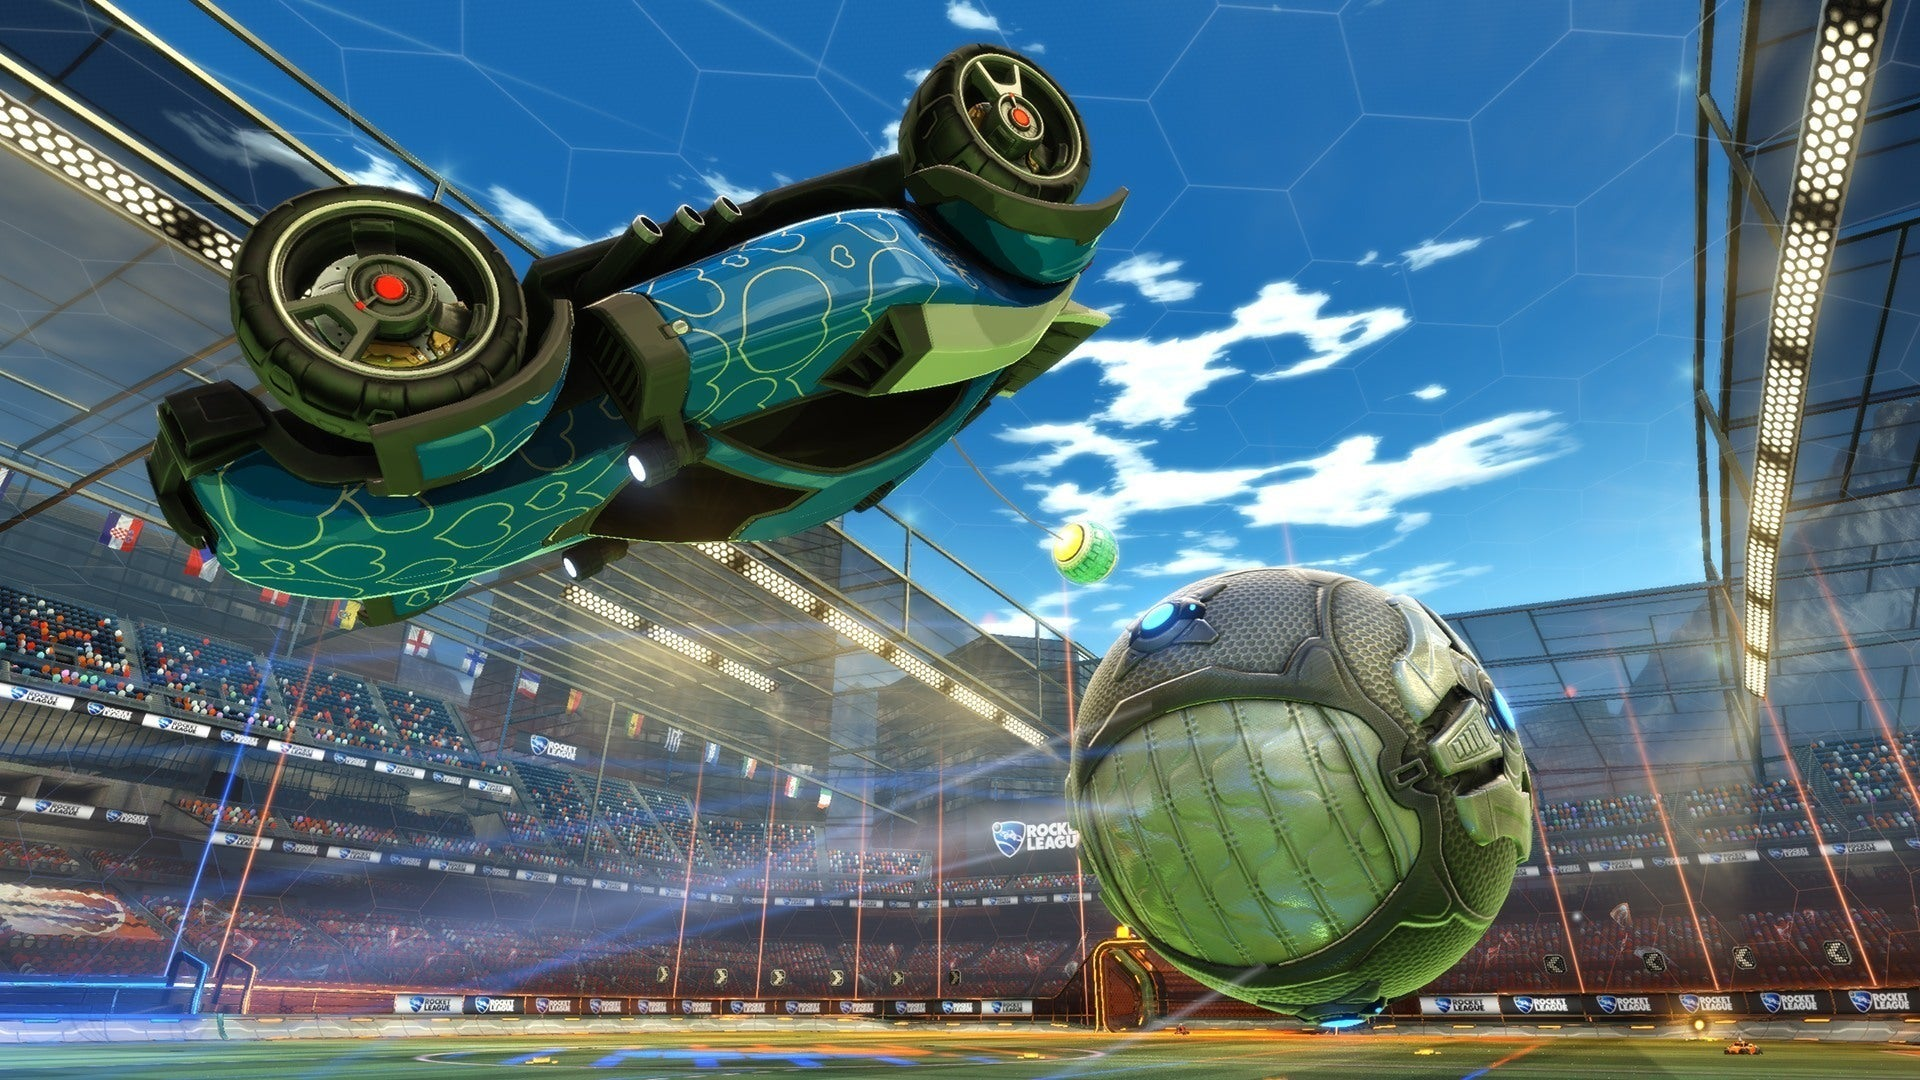 Rocket League Screenshots Pictures Wallpapers PC IGN